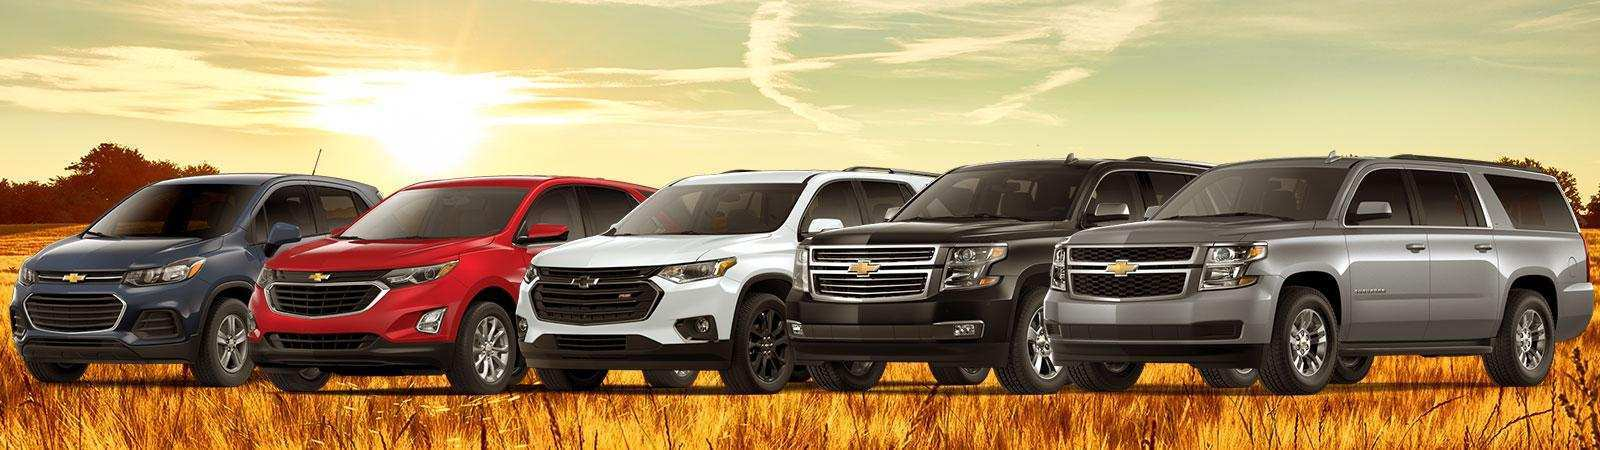 98 A 2019 Chevrolet Lineup Price Design And Review